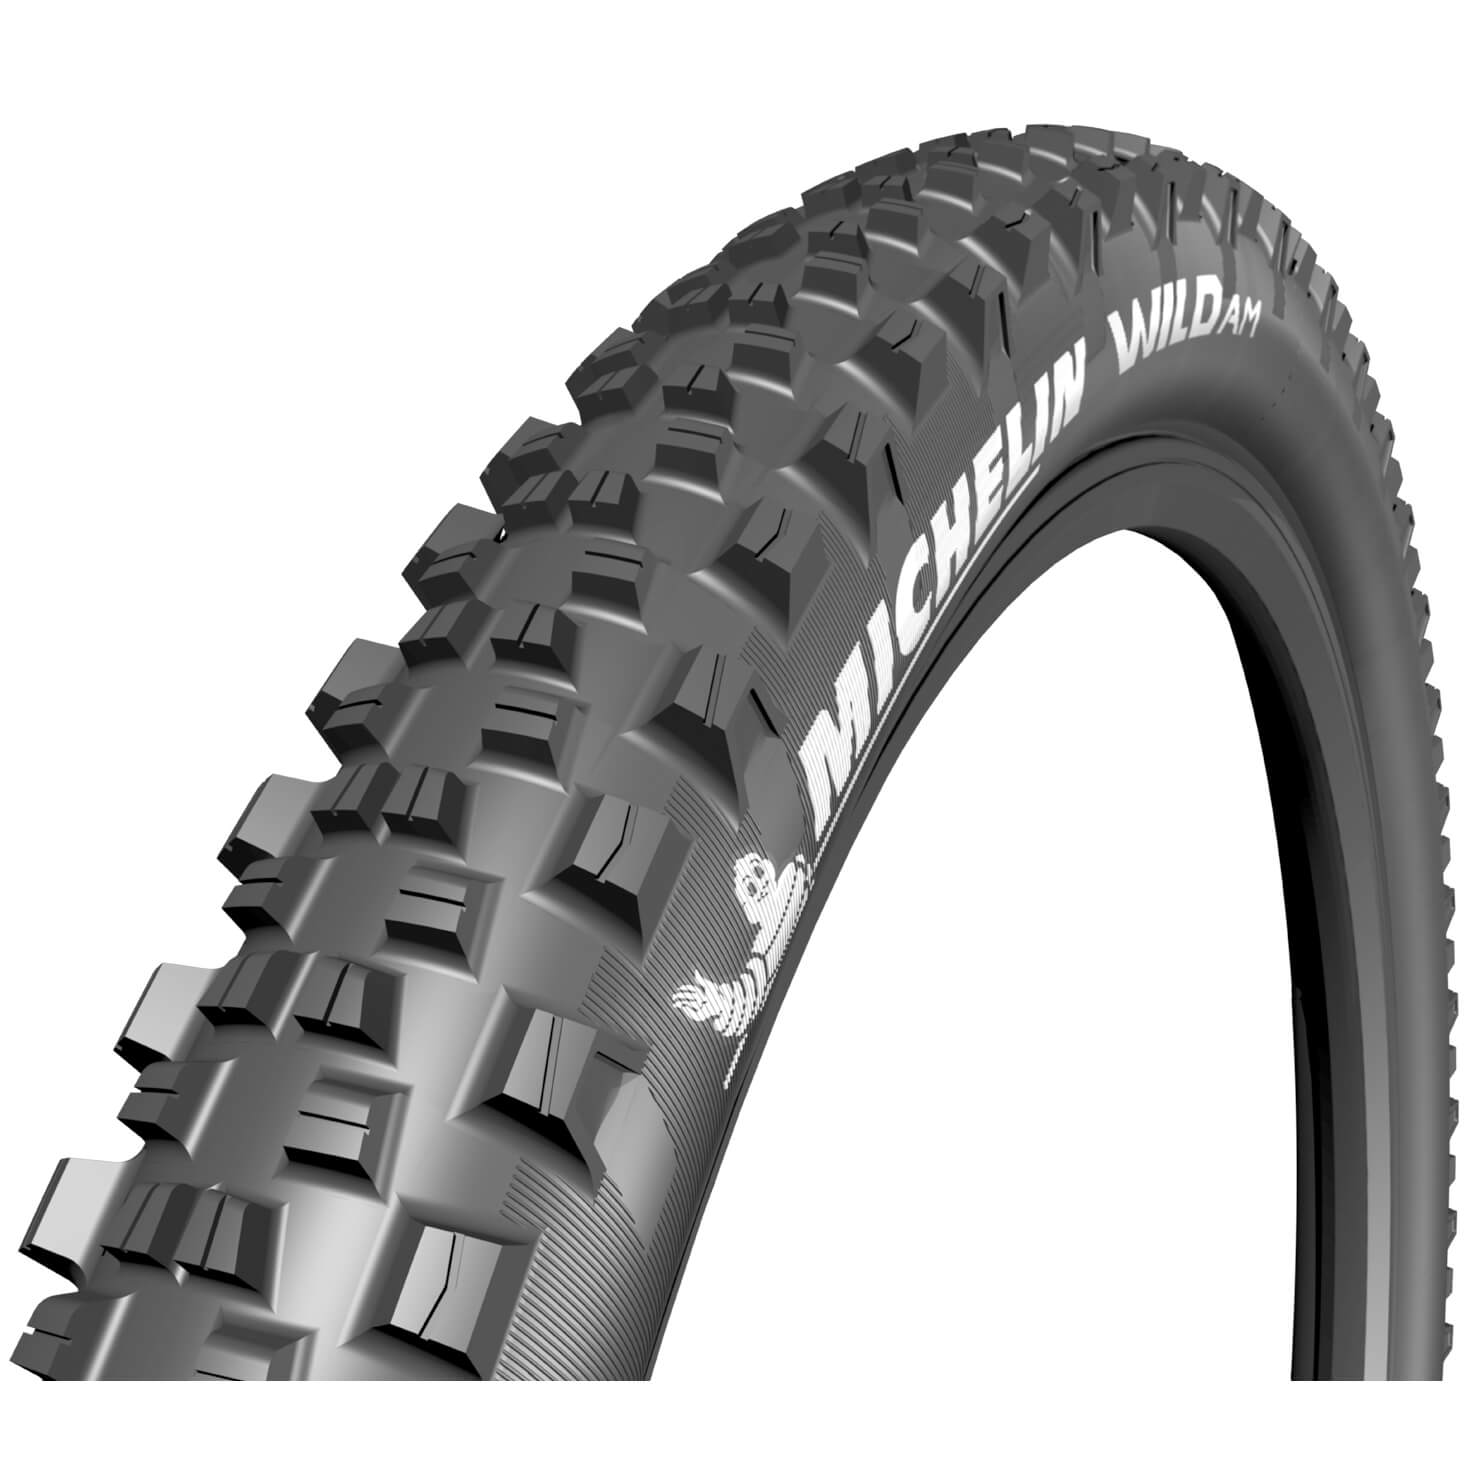 Michelin Wild AM Folding MTB Tyre